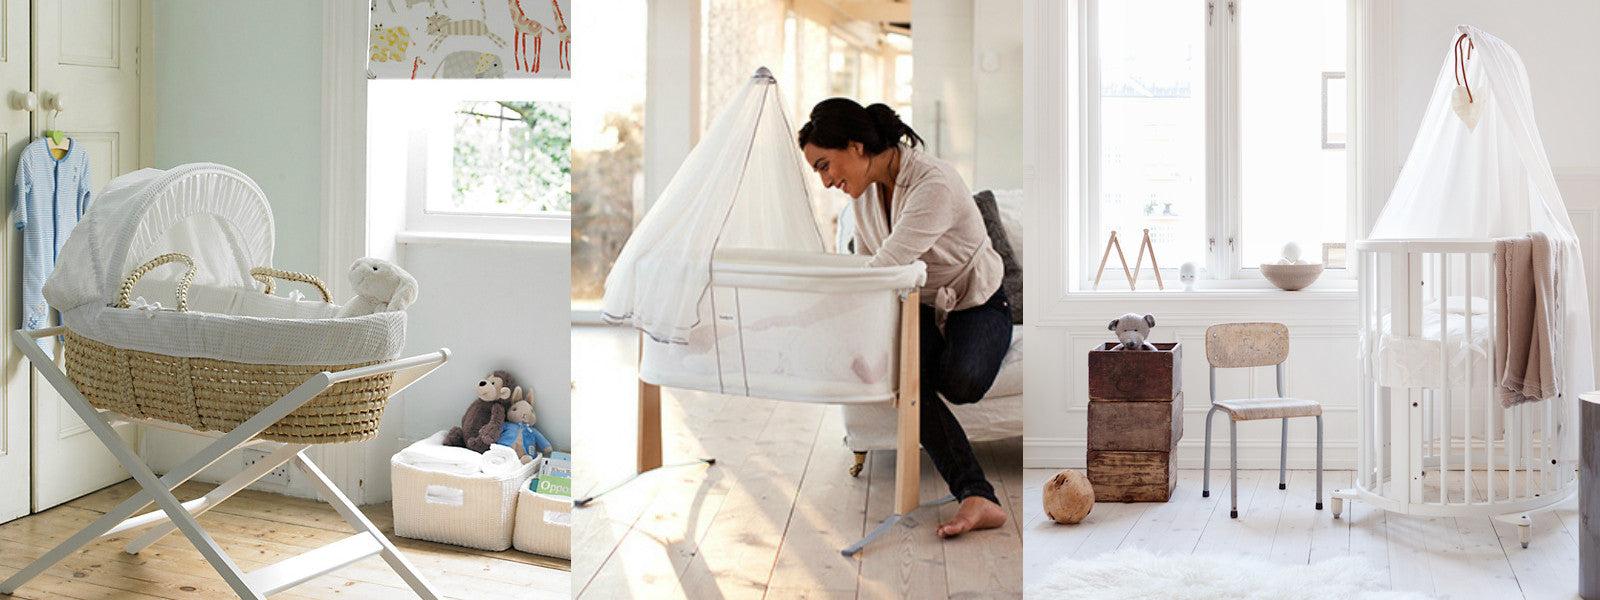 Baby bed vs bassinet - Buy Bassinets And Cradles At Bassinet Joy